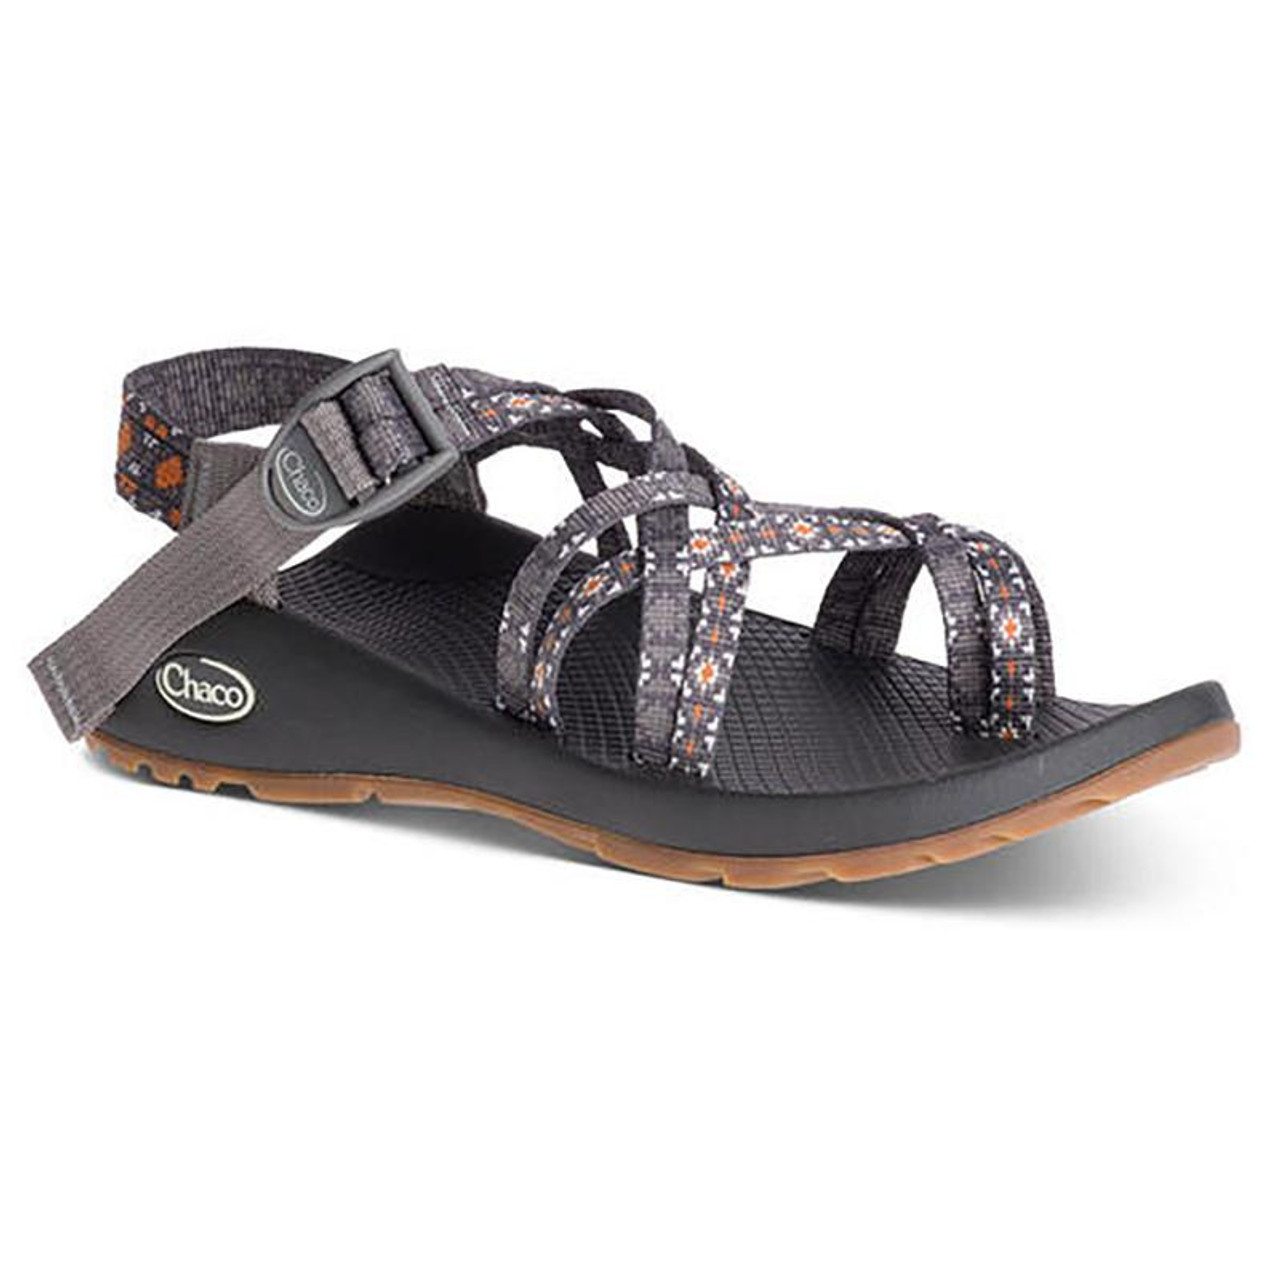 d311d35d29b4 Chaco Women s Sandal - ZX 2 Classic - Creed Golden - Surf and Dirt